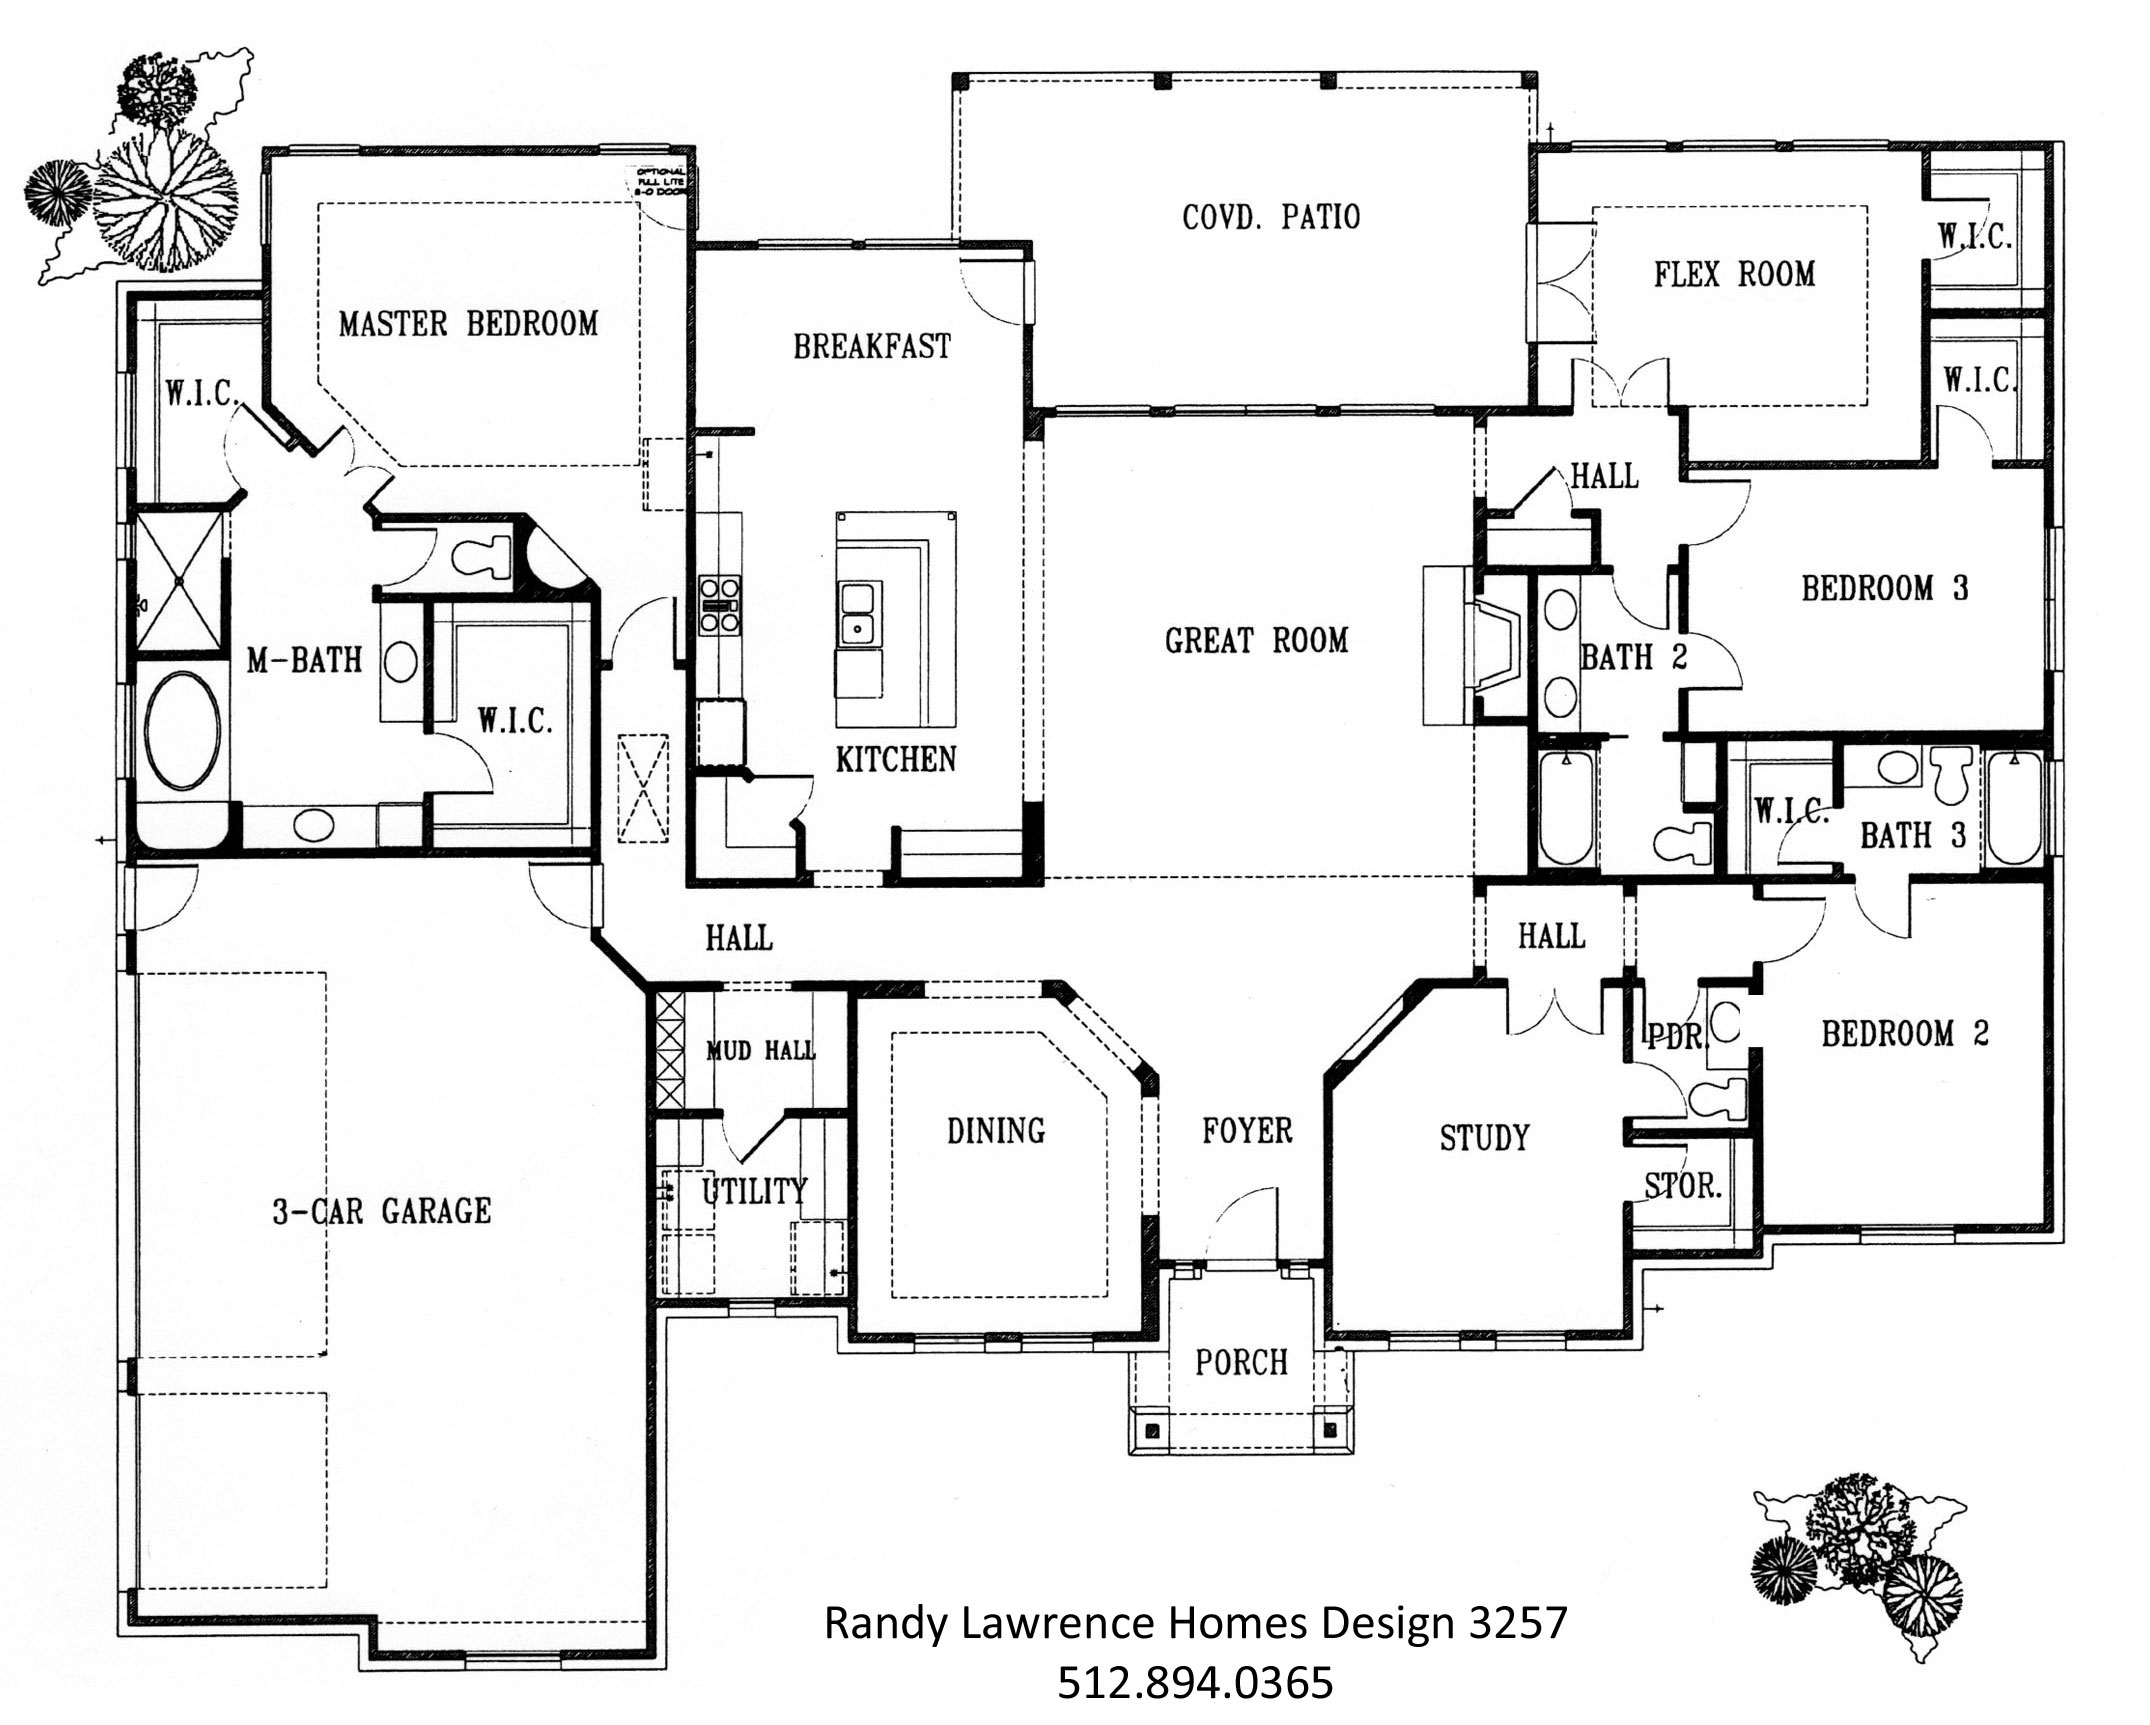 New home floor plans salamanca 33 new home floor plans for Famous home designs